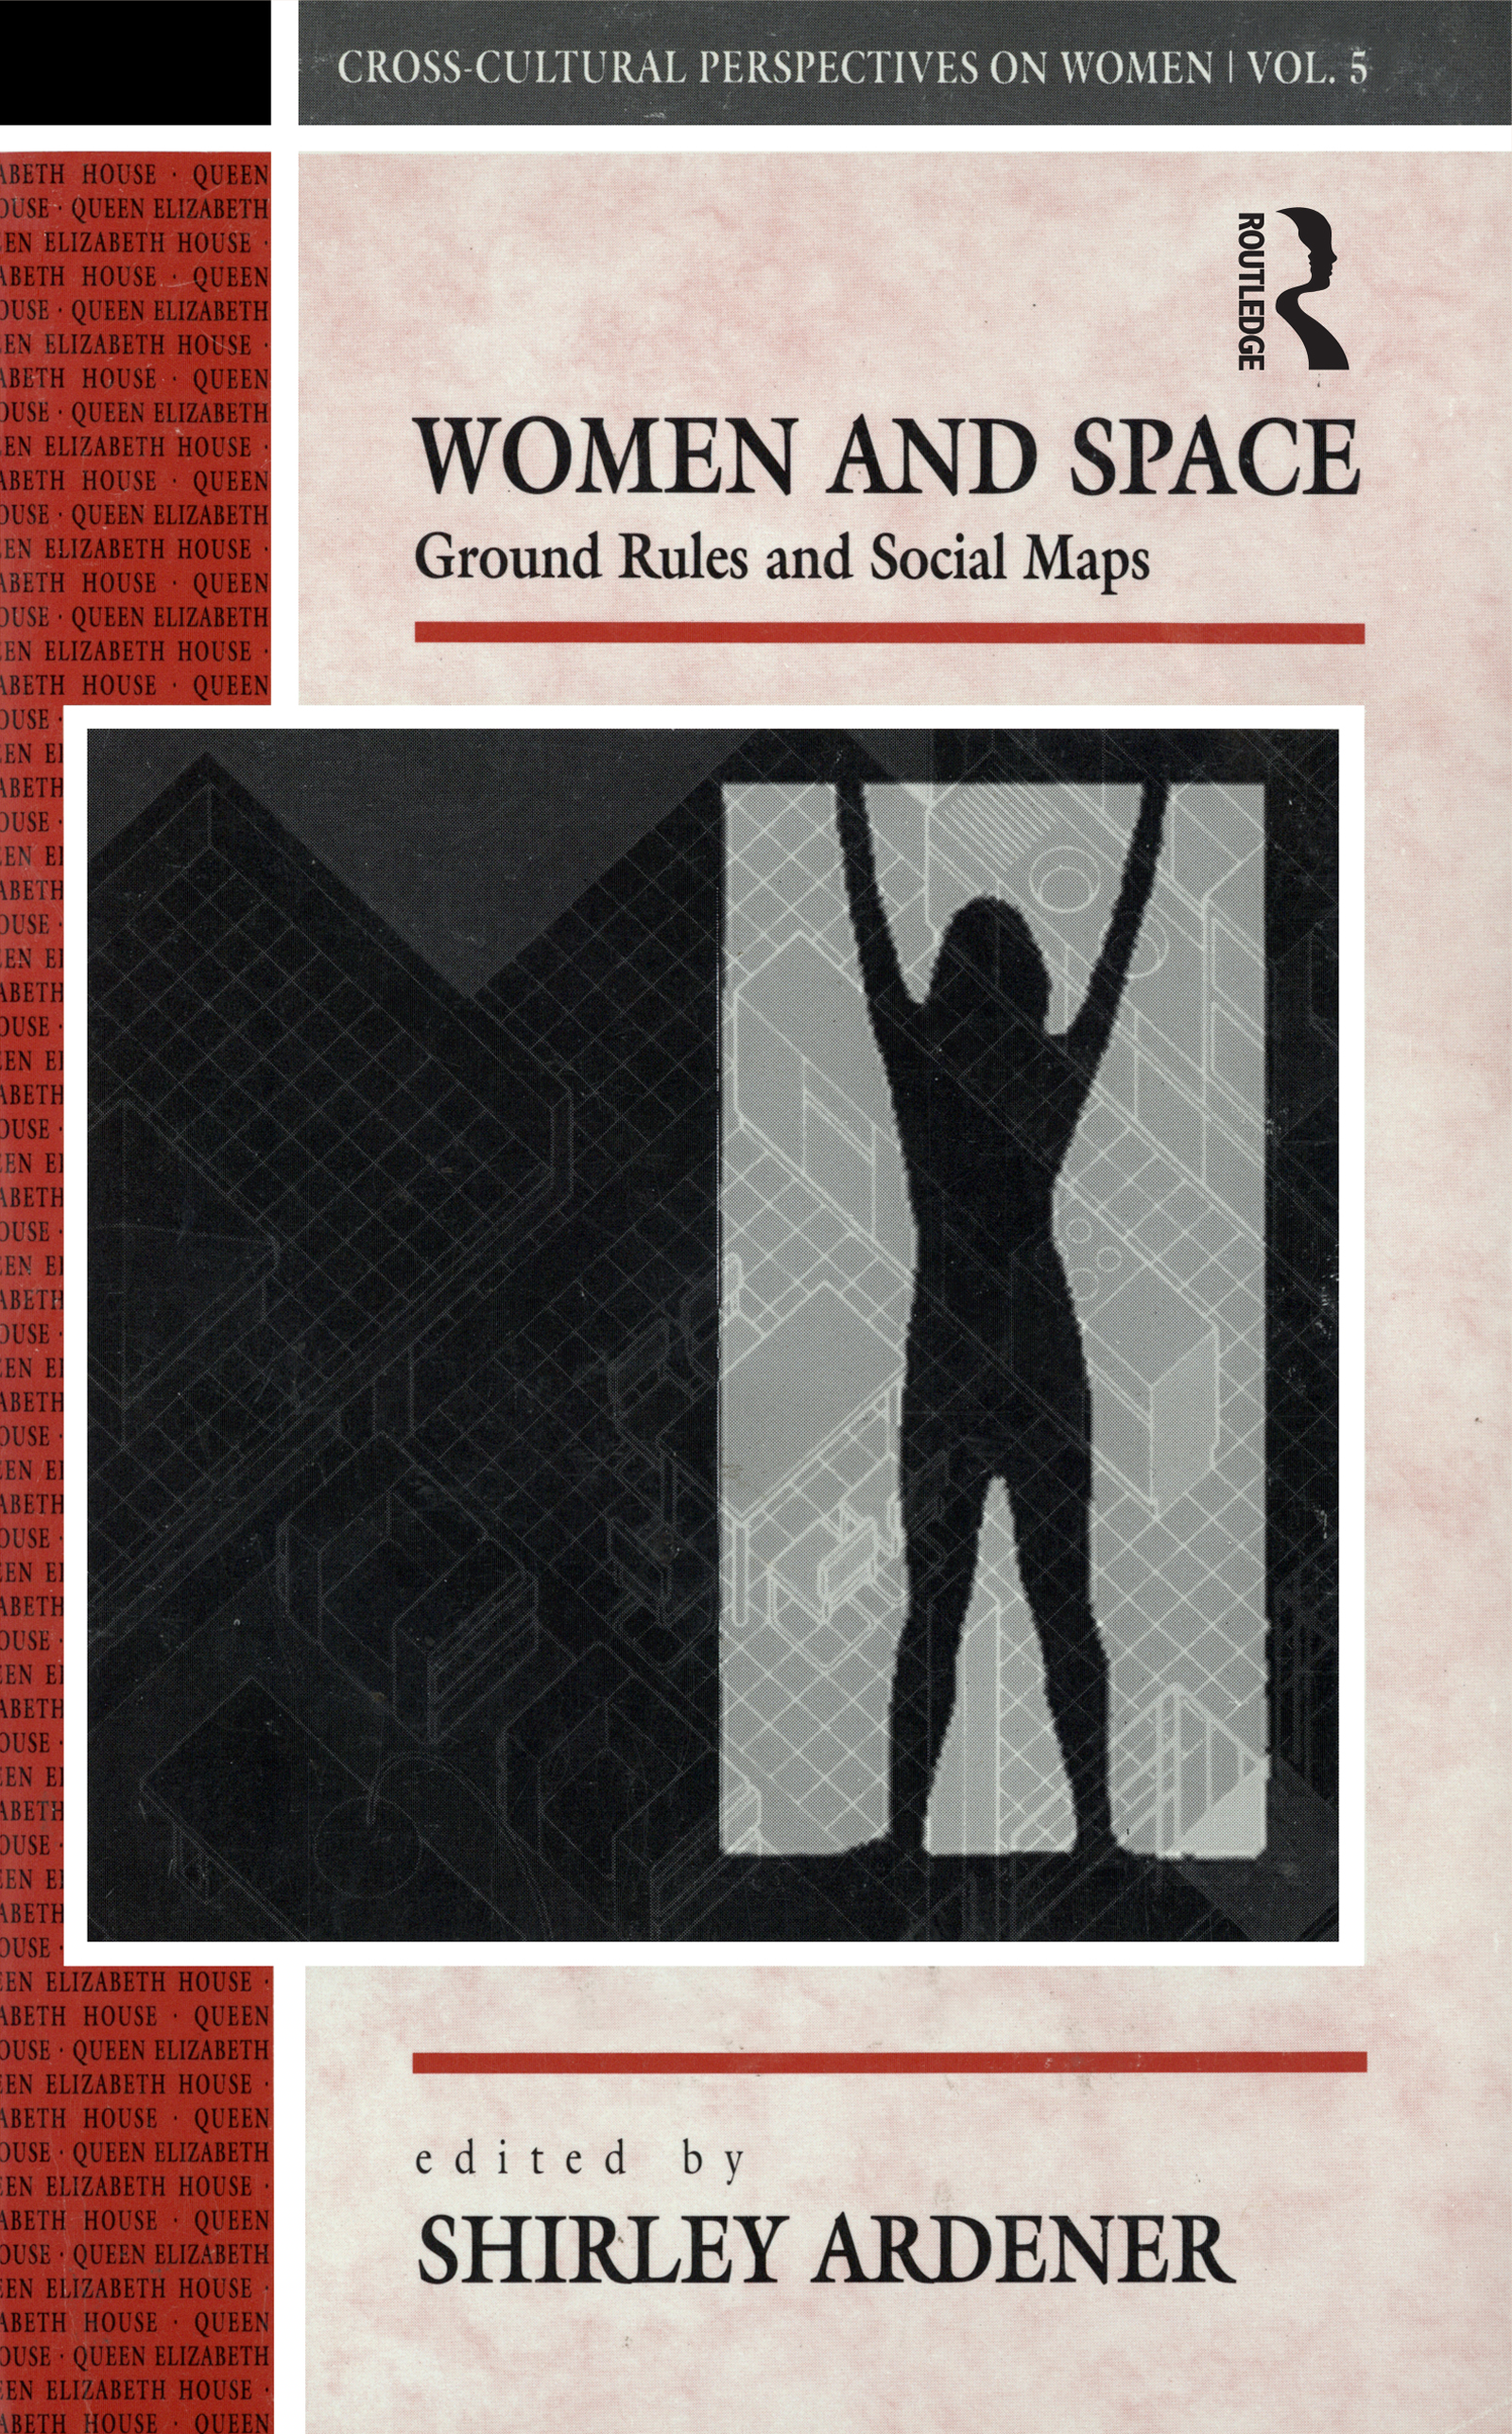 Ground Rules and Social Maps for Women: An Introduction